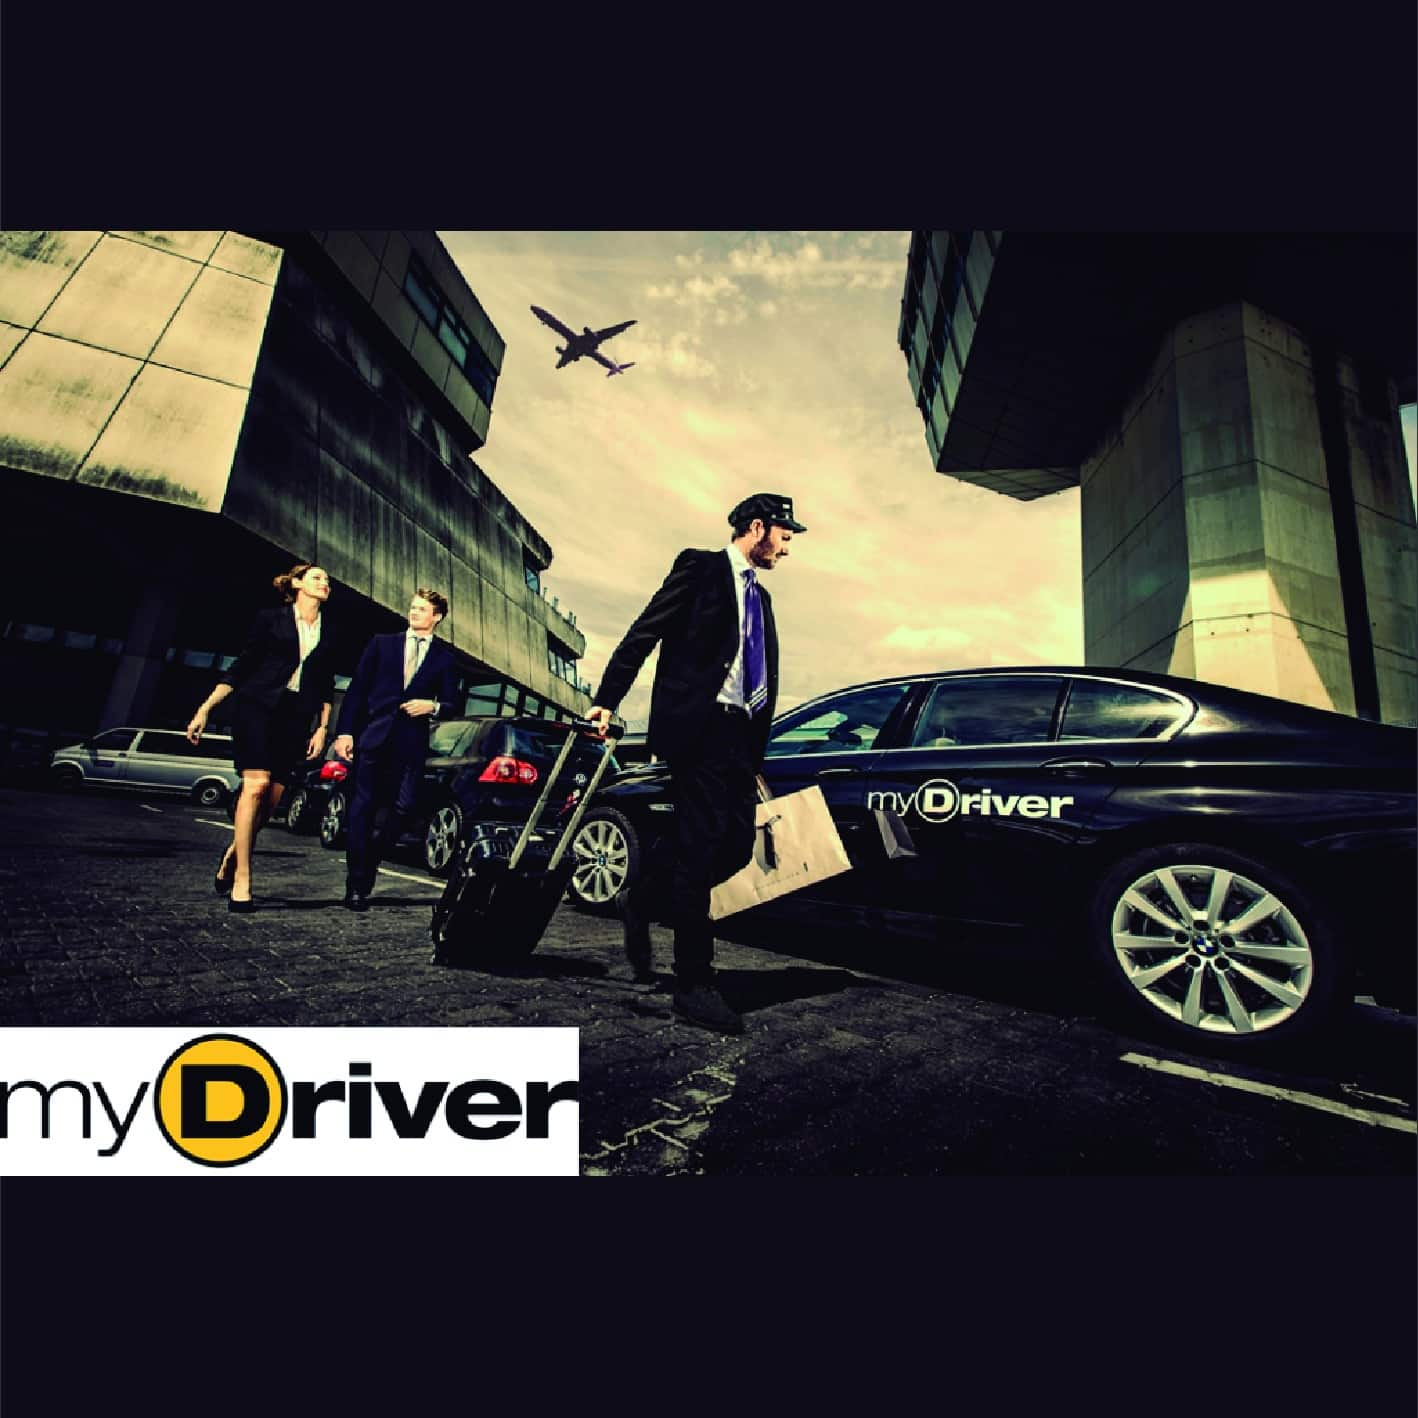 "<span style=""color:red;"">Save 15€</span><br />myDriver: Your Citylife Madrid Airport Transfer!"